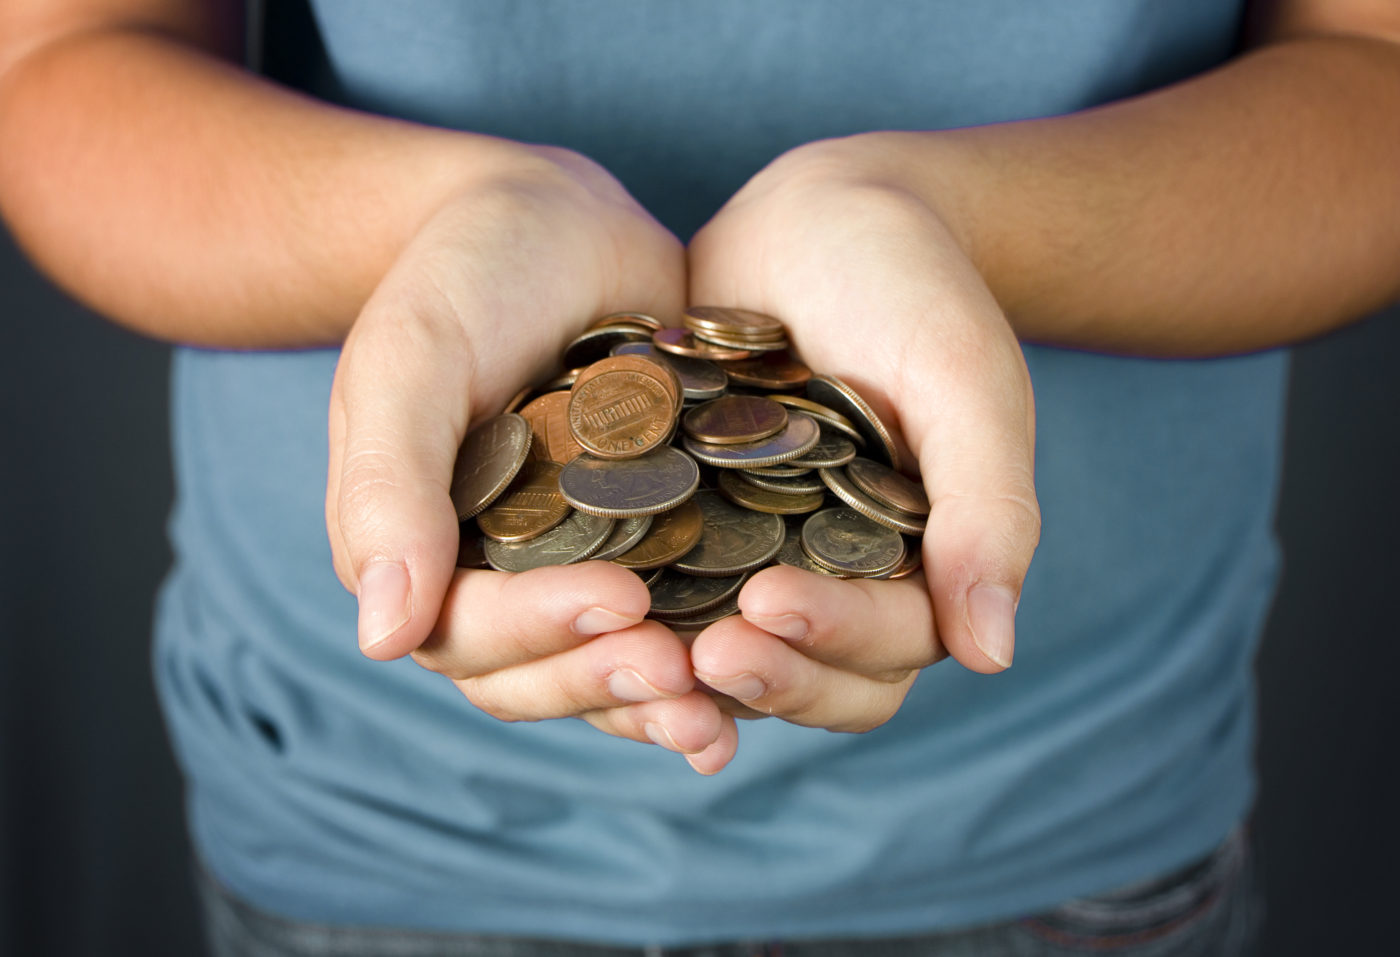 Here is a lesson whether teens realize it or not, money impacts their lives in so many ways –